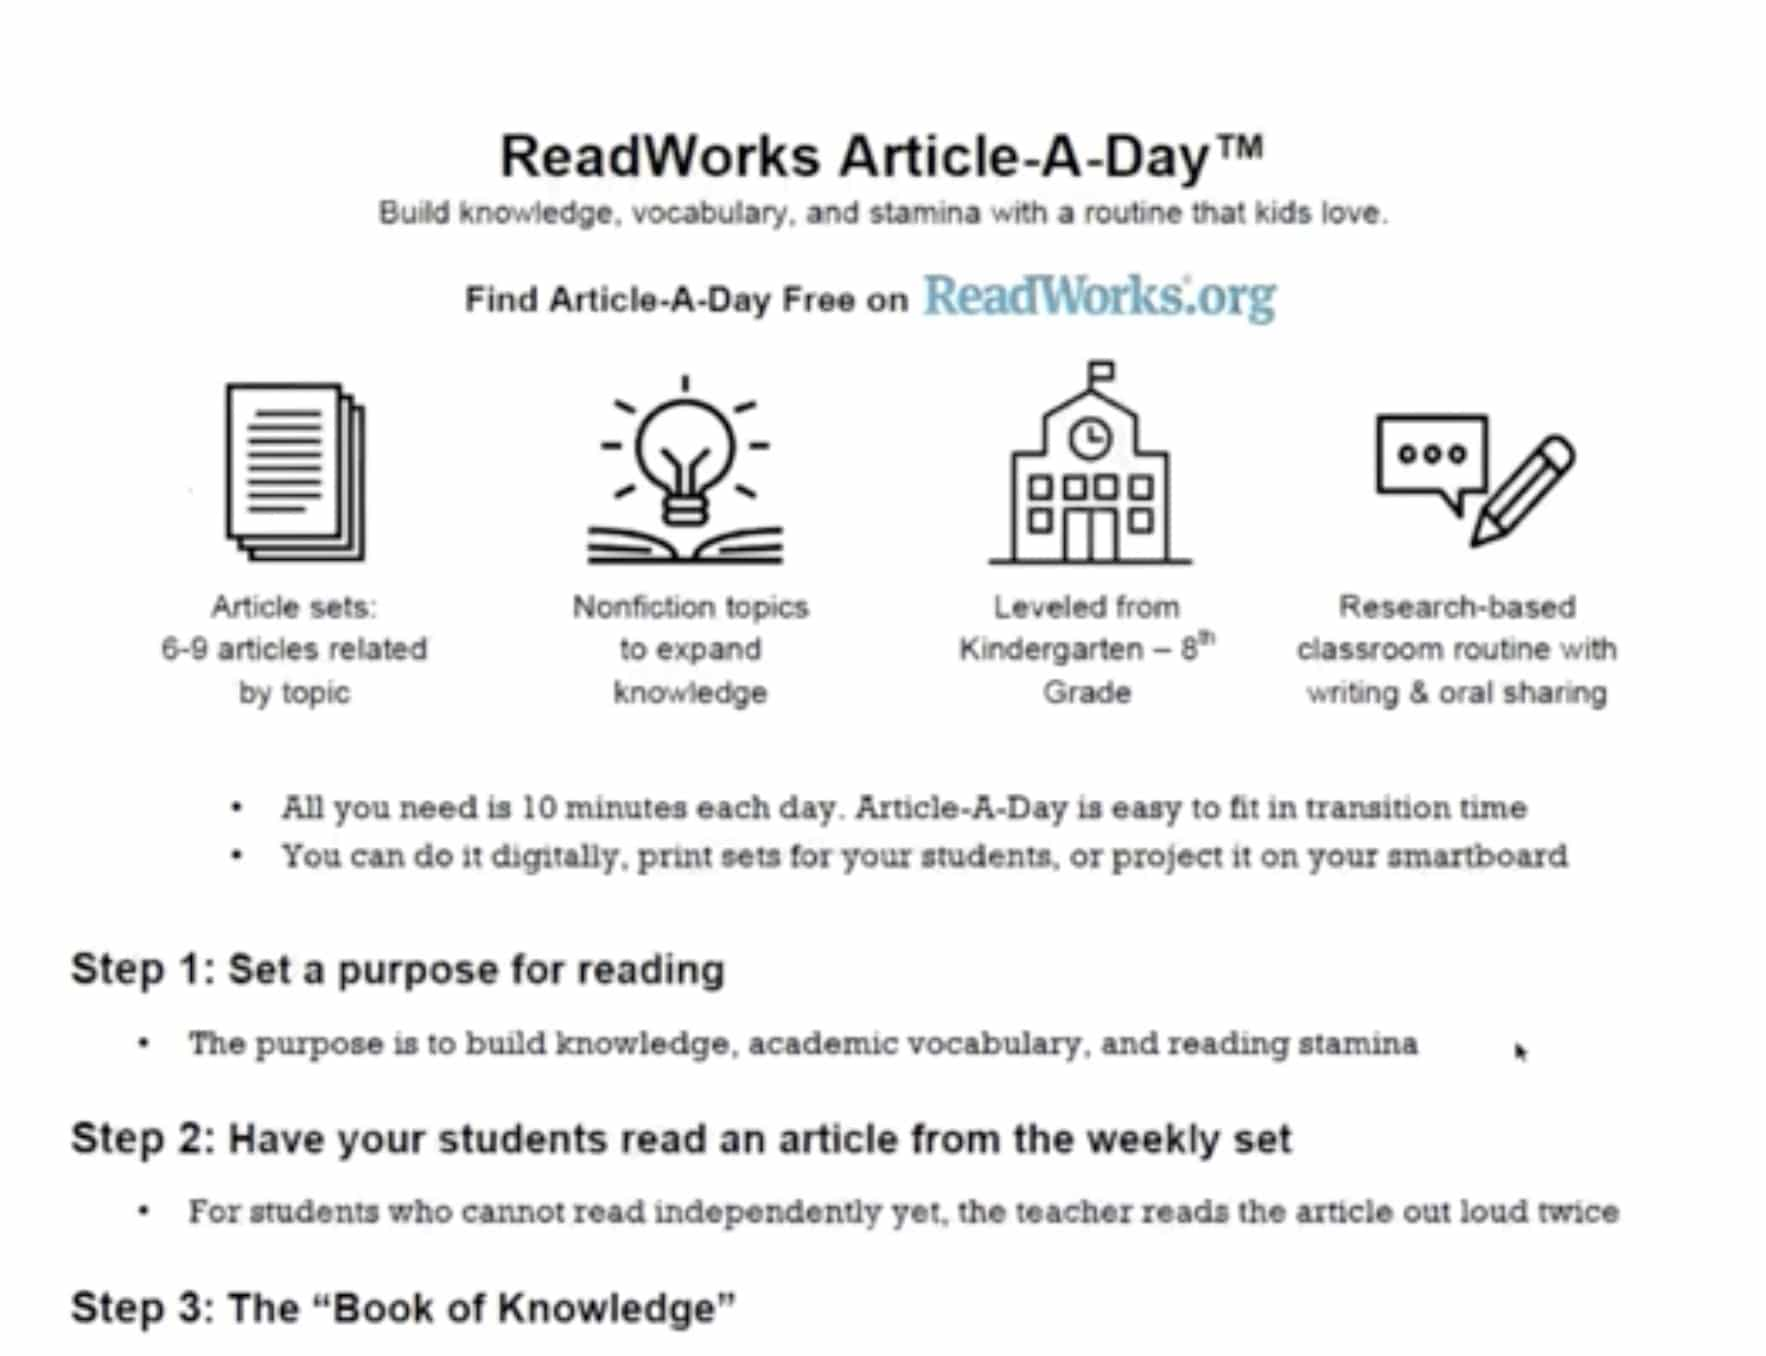 ReadWorks Article-A-Day